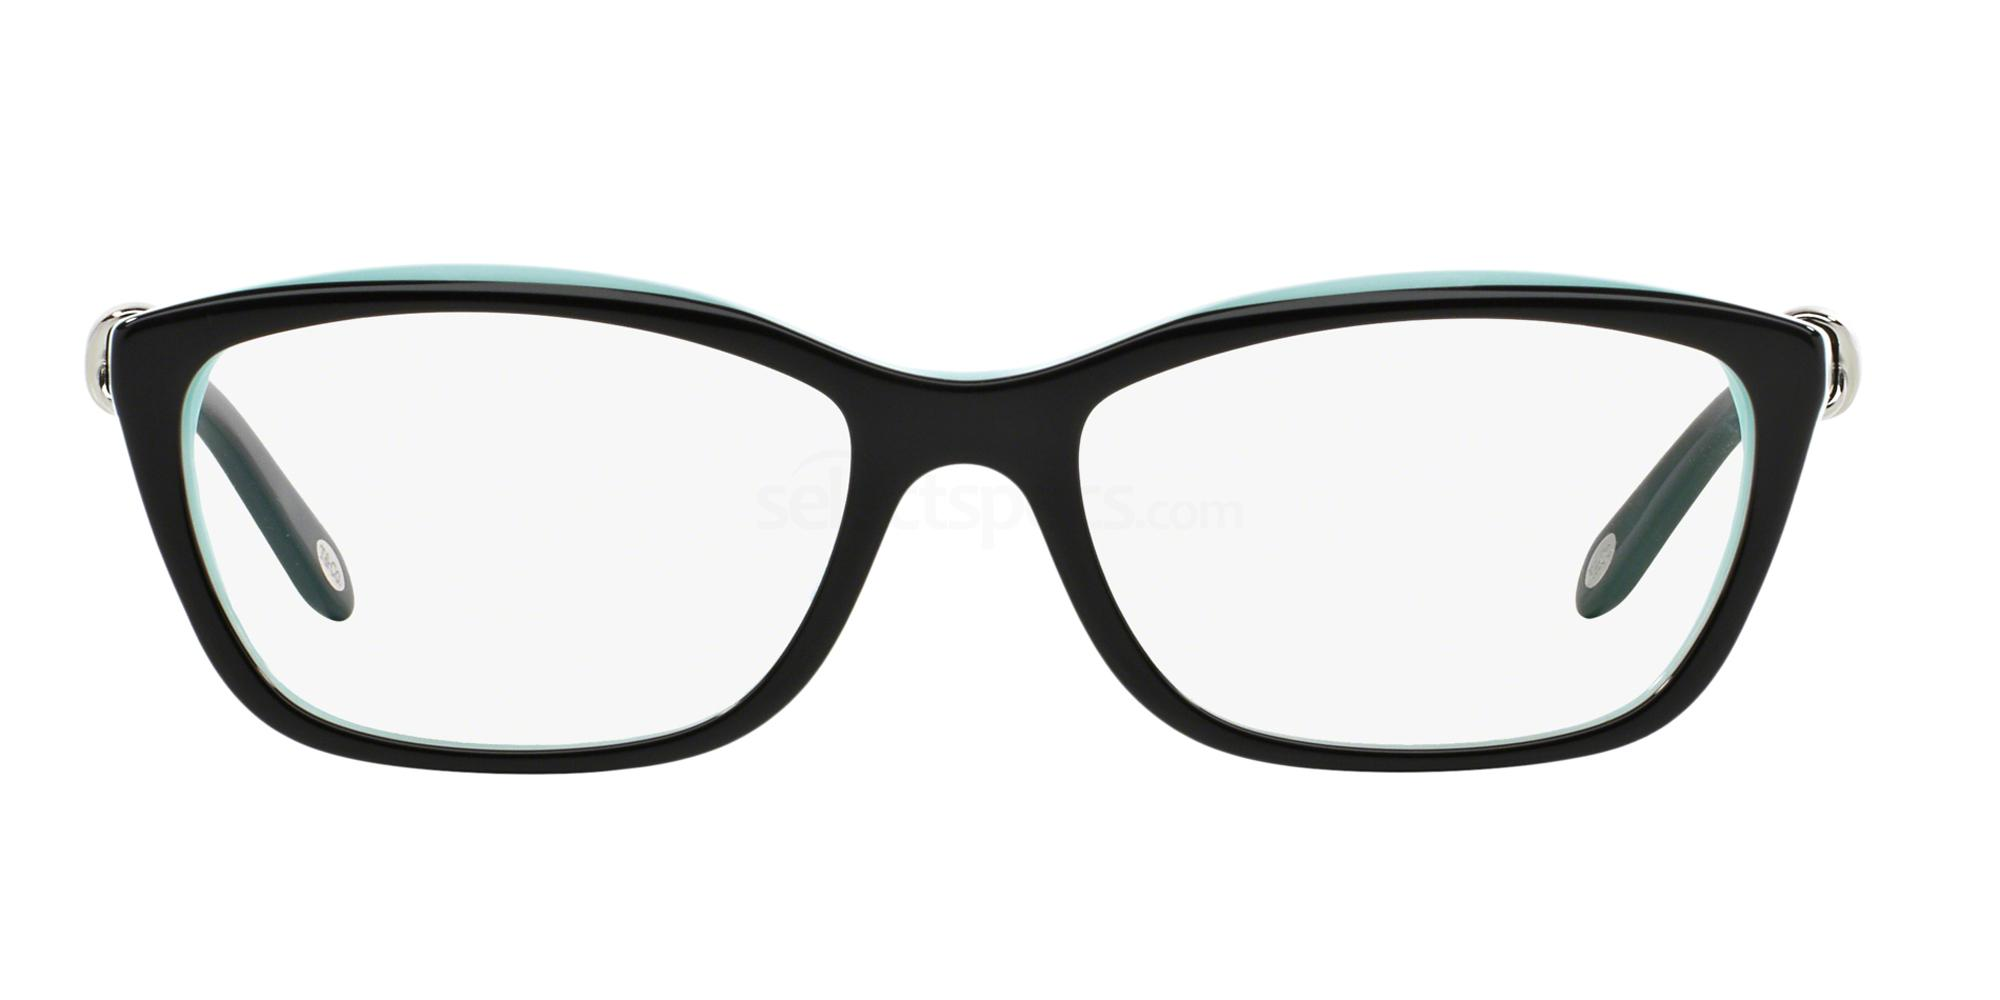 8055 TF2074 Glasses, Tiffany & Co.